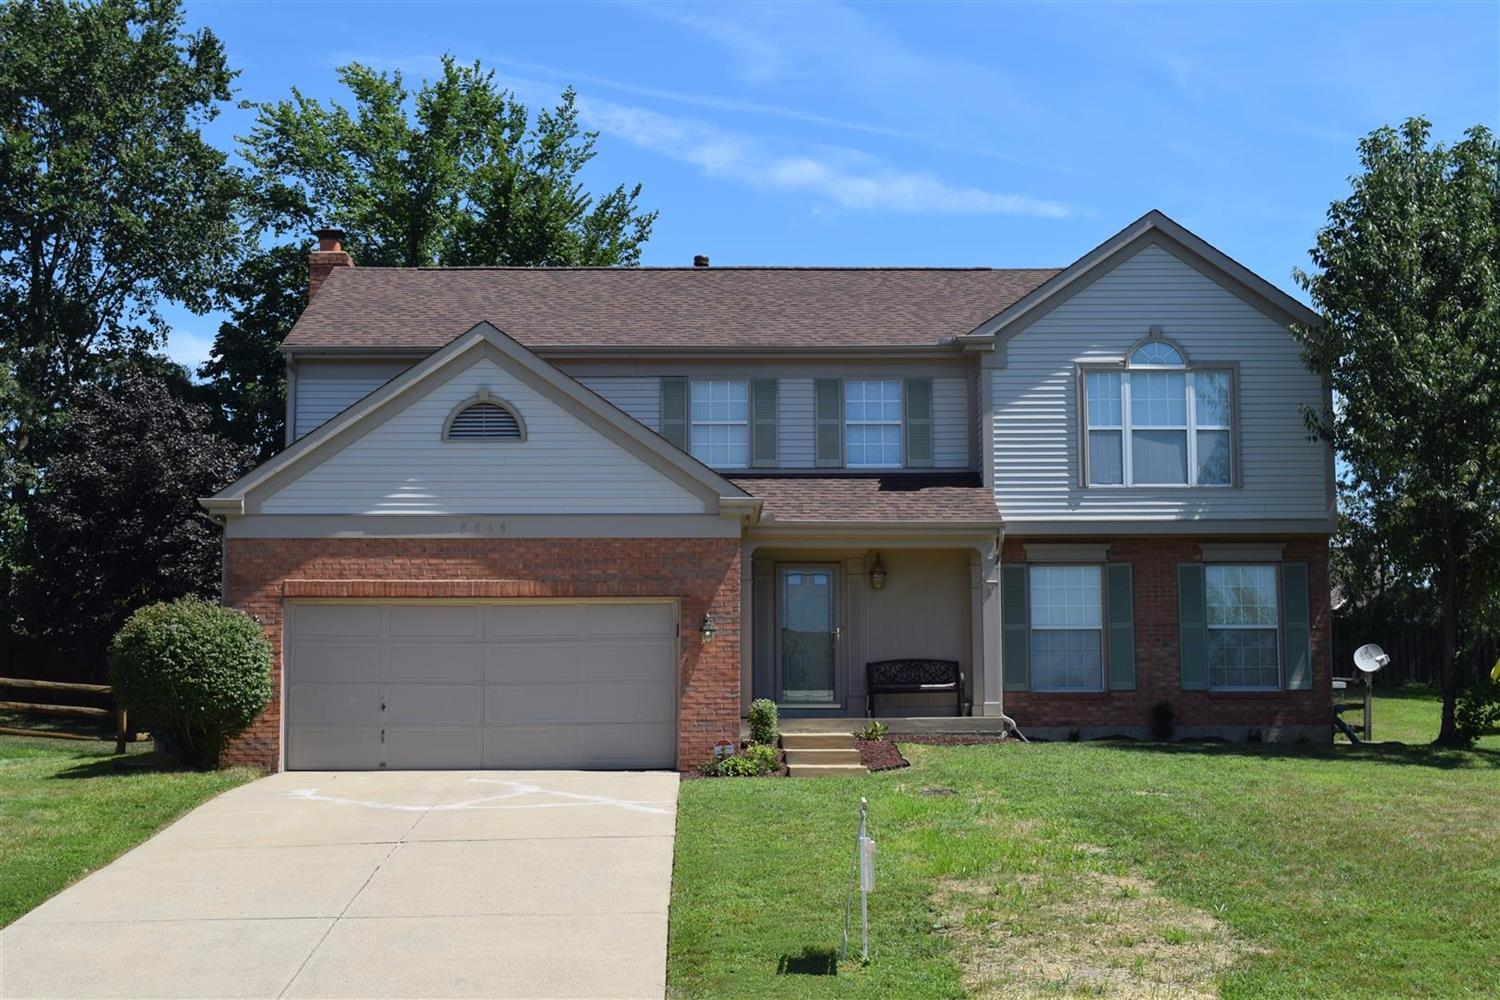 Photo 1 for 8448 Woodcreek Dr Florence, KY 41042